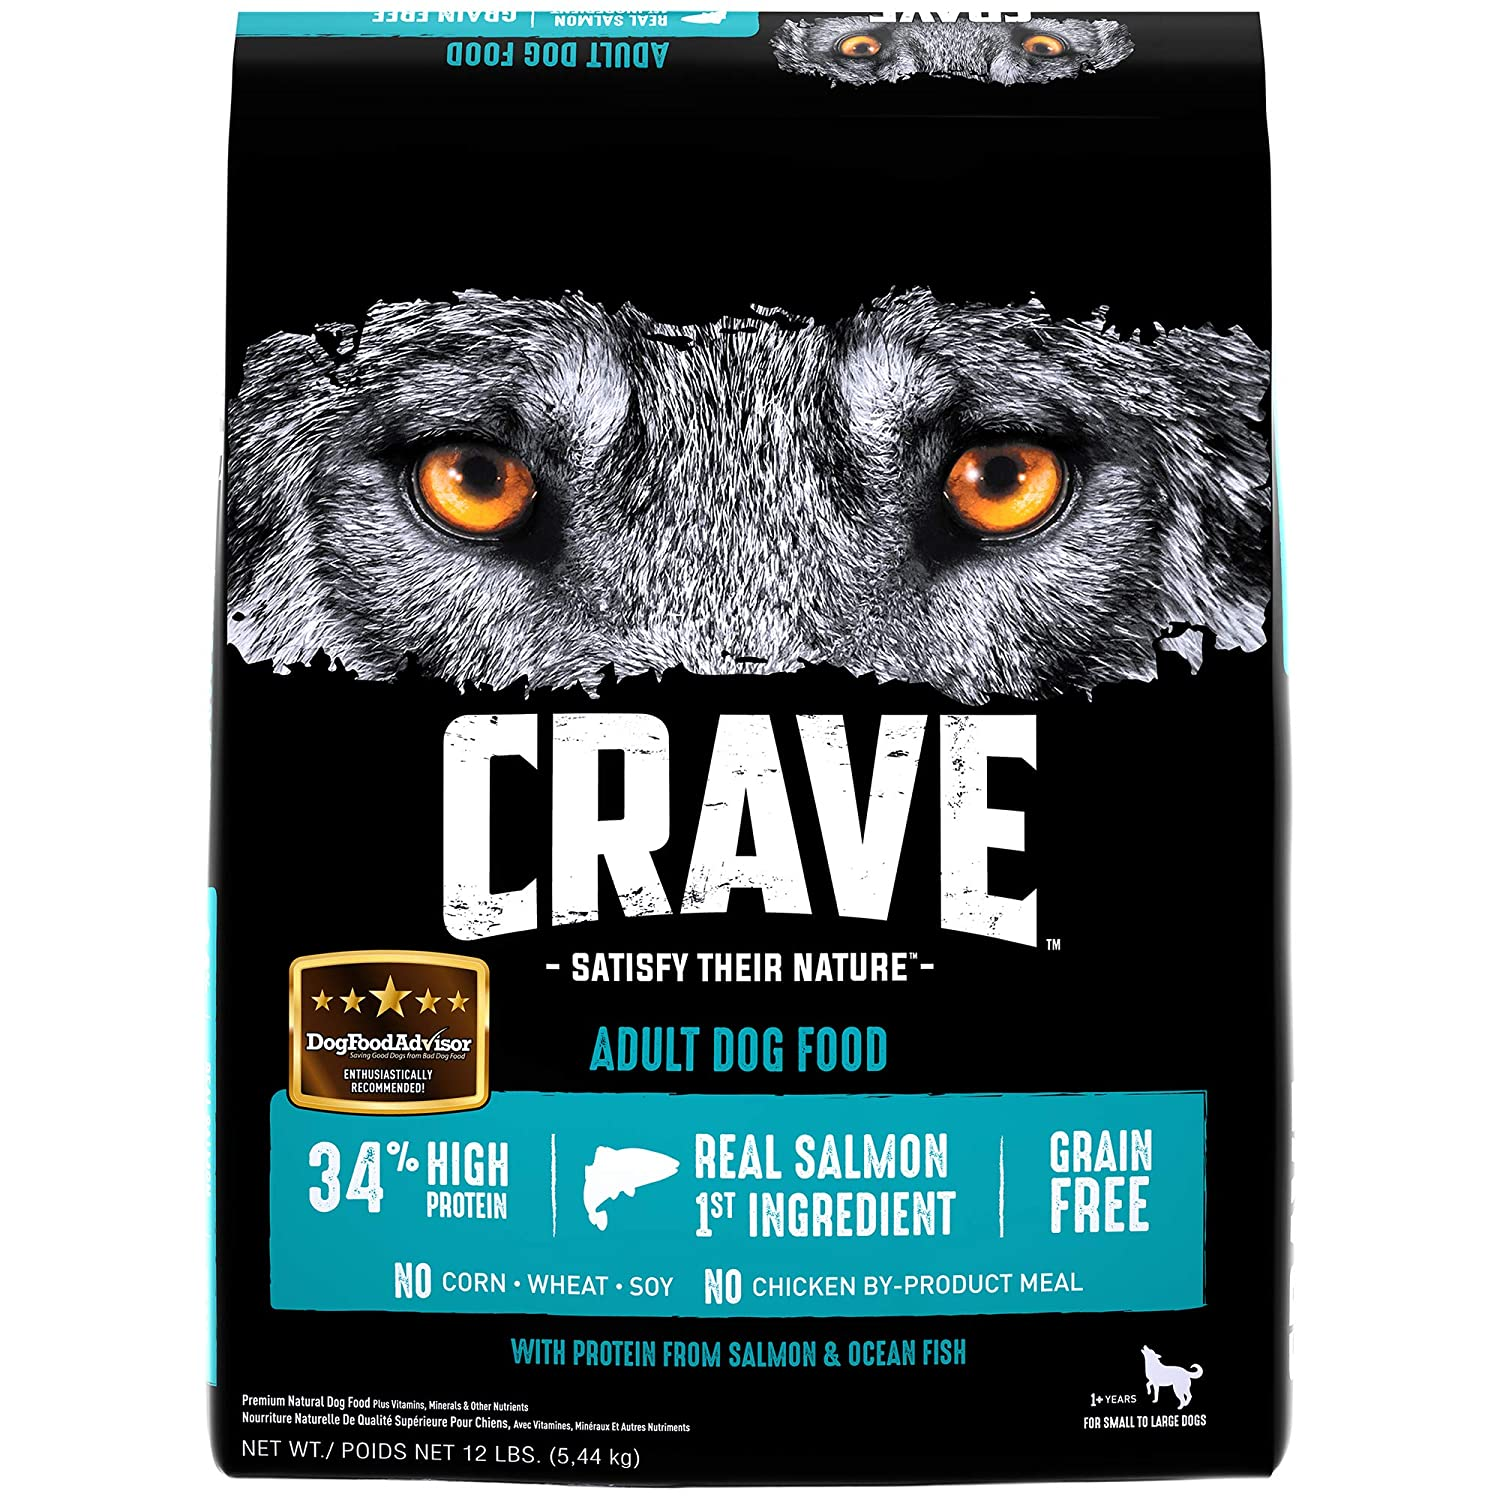 4. Crave Grain-Free, High-Protein Adult Dry Dog Food, Salmon